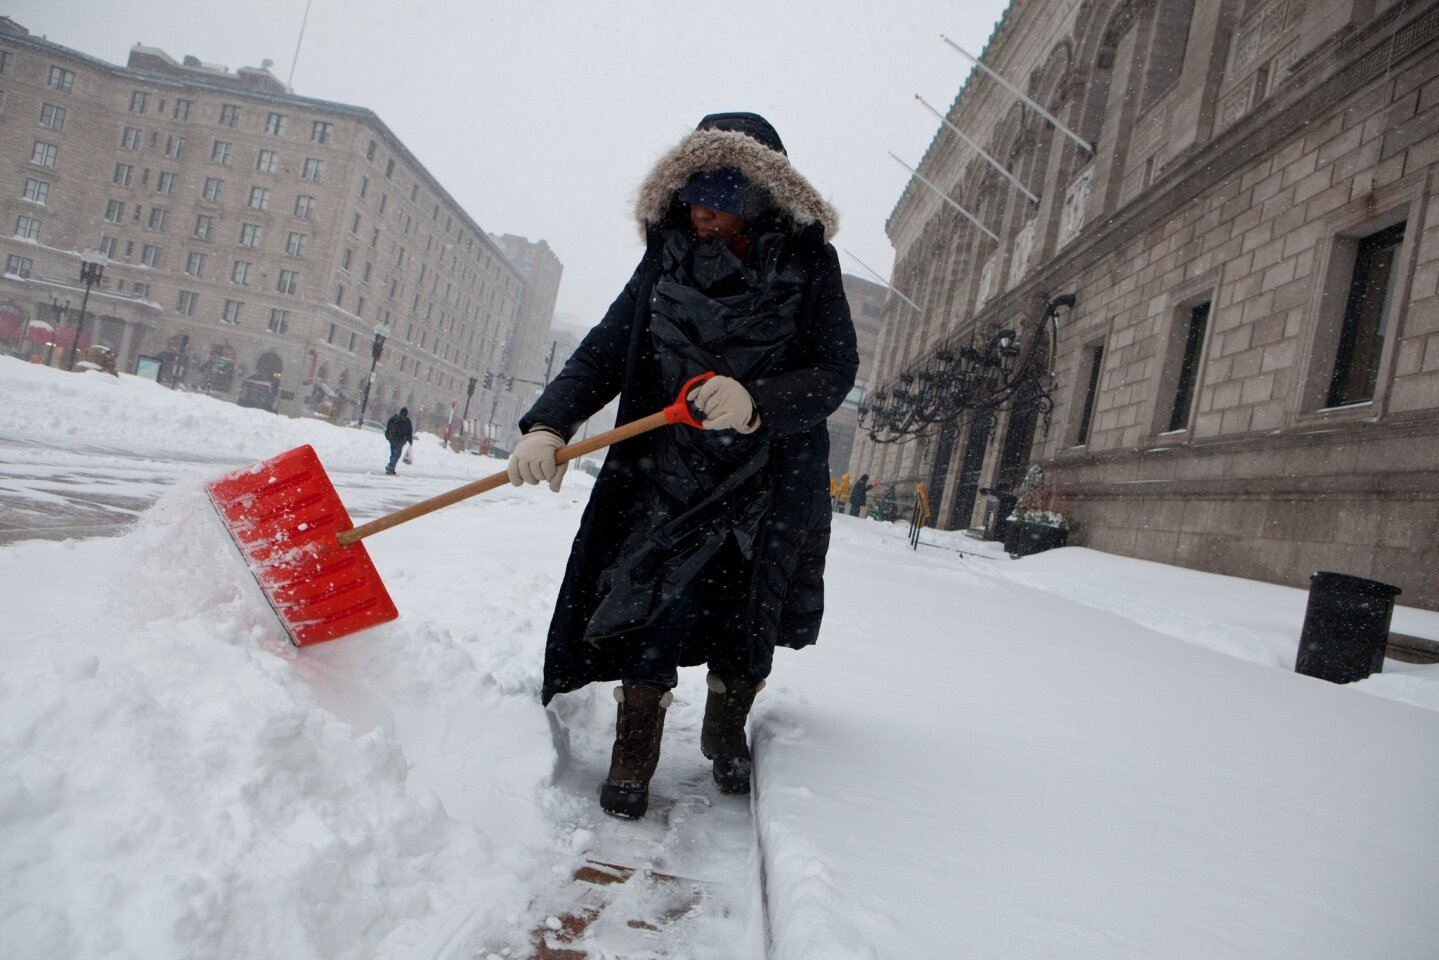 A library employee works to clear the sidewalks in front of the main branch of the Boston Public Library in Boston on Tuesday.